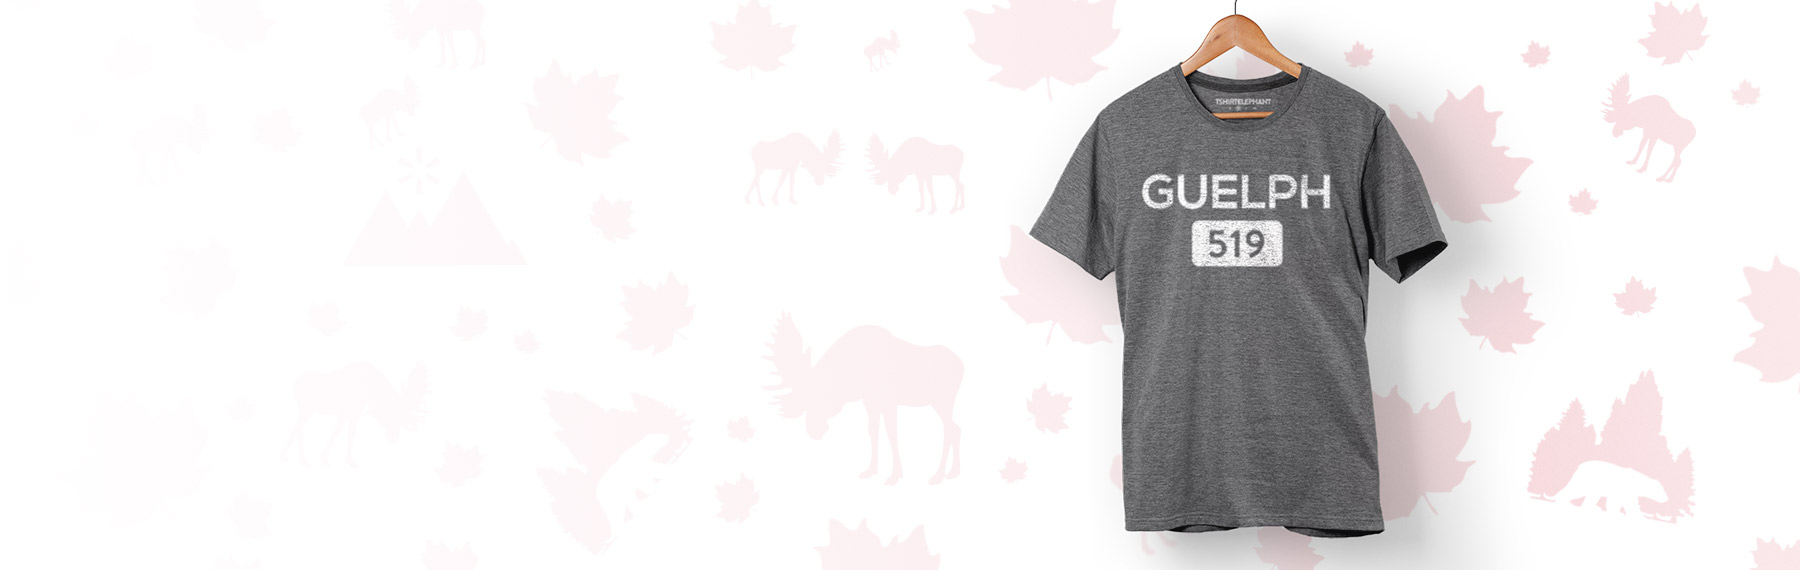 Design and Order Custom T-Shirts in Guelph | T-Shirt Elephant